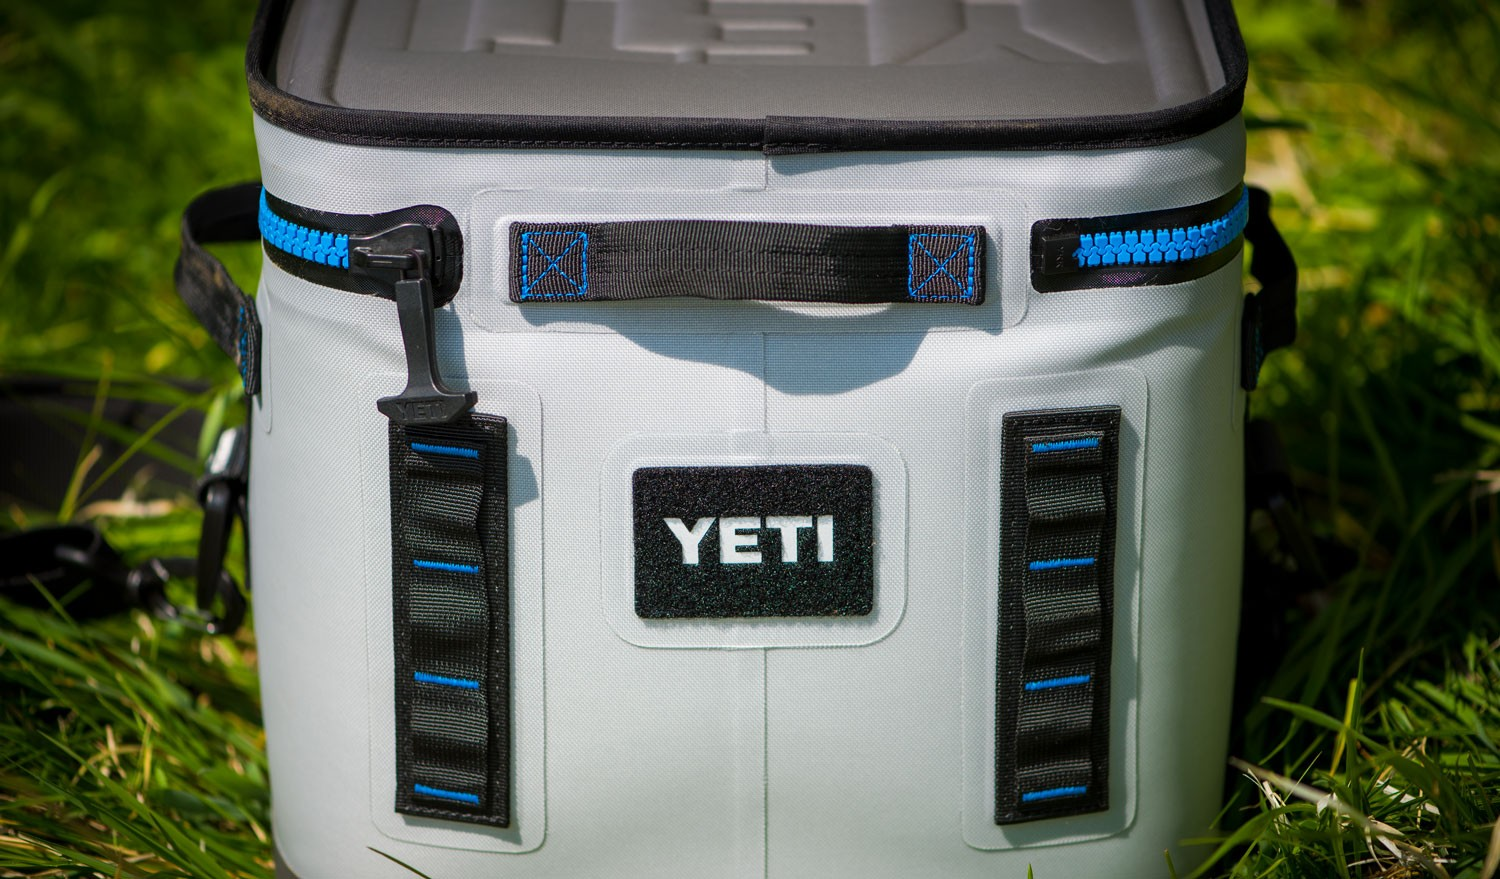 Why Everyone Is Going Nuts for Yeti's $300 Coolers